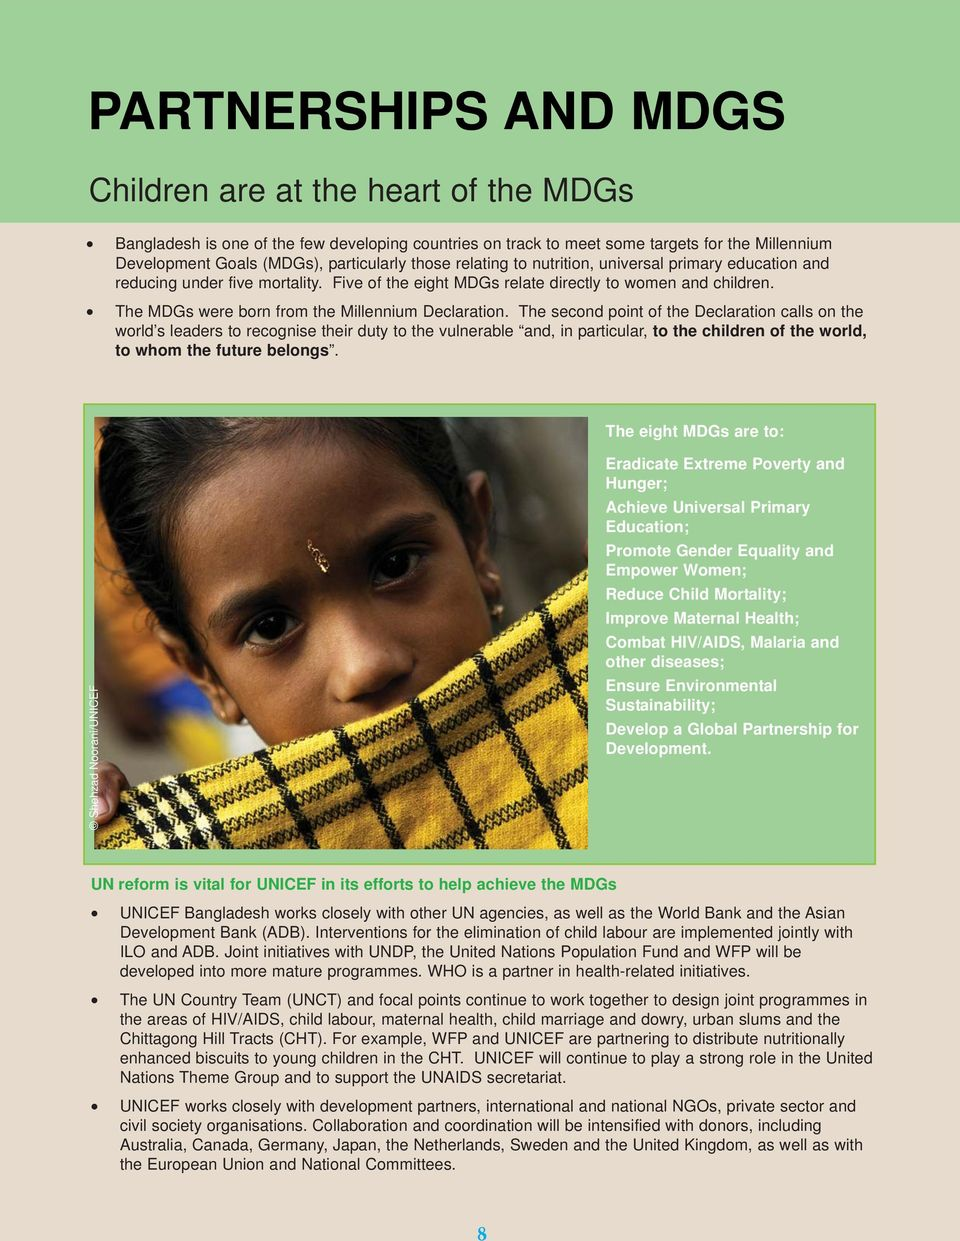 The MDGs were born from the Millennium Declaration.